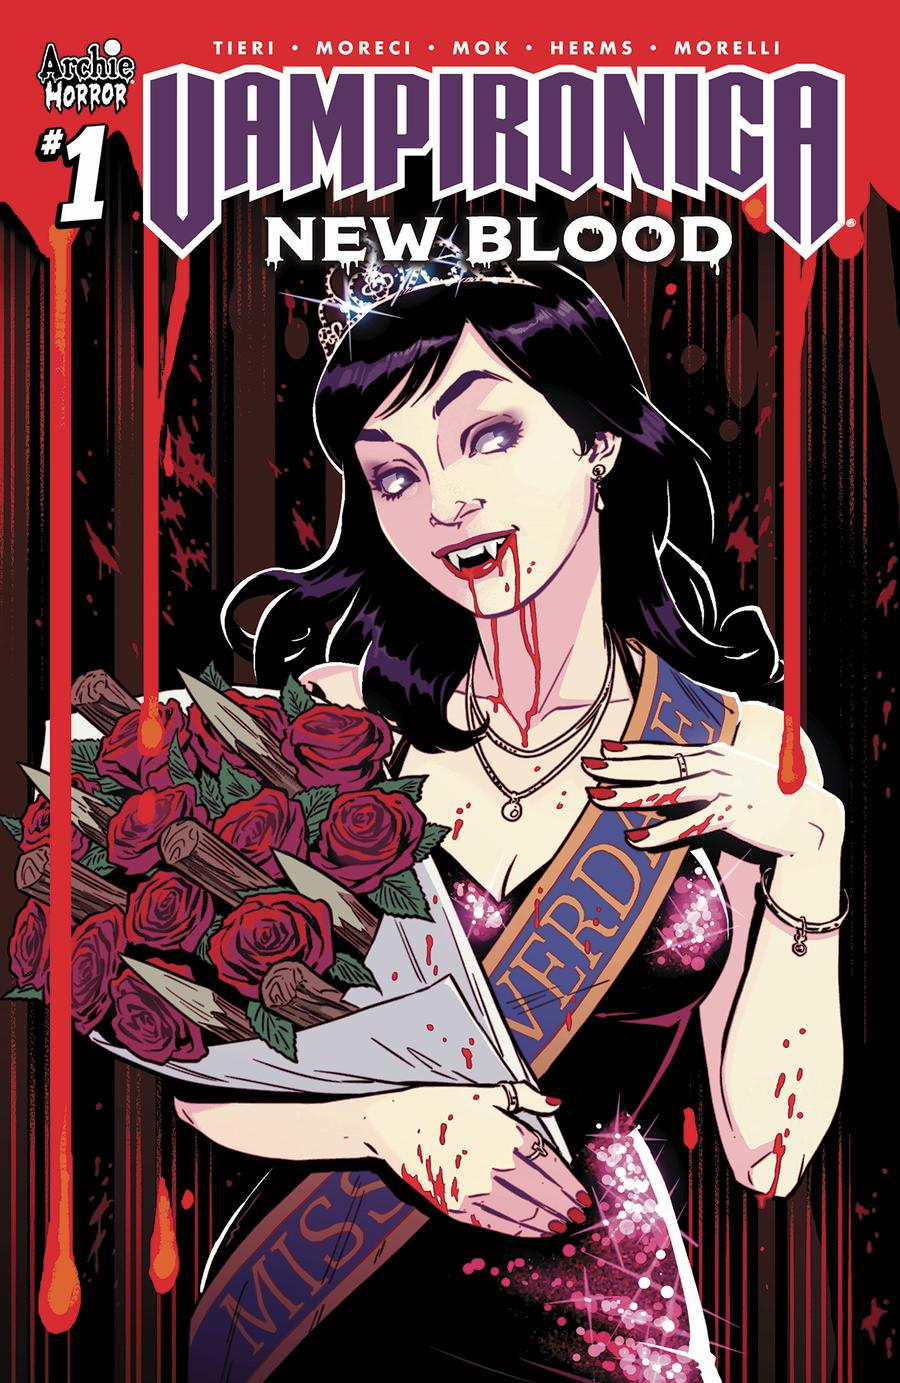 Vampironica New Blood #1 Cover C Variant Rebekah Isaacs & Matt Herms Cover